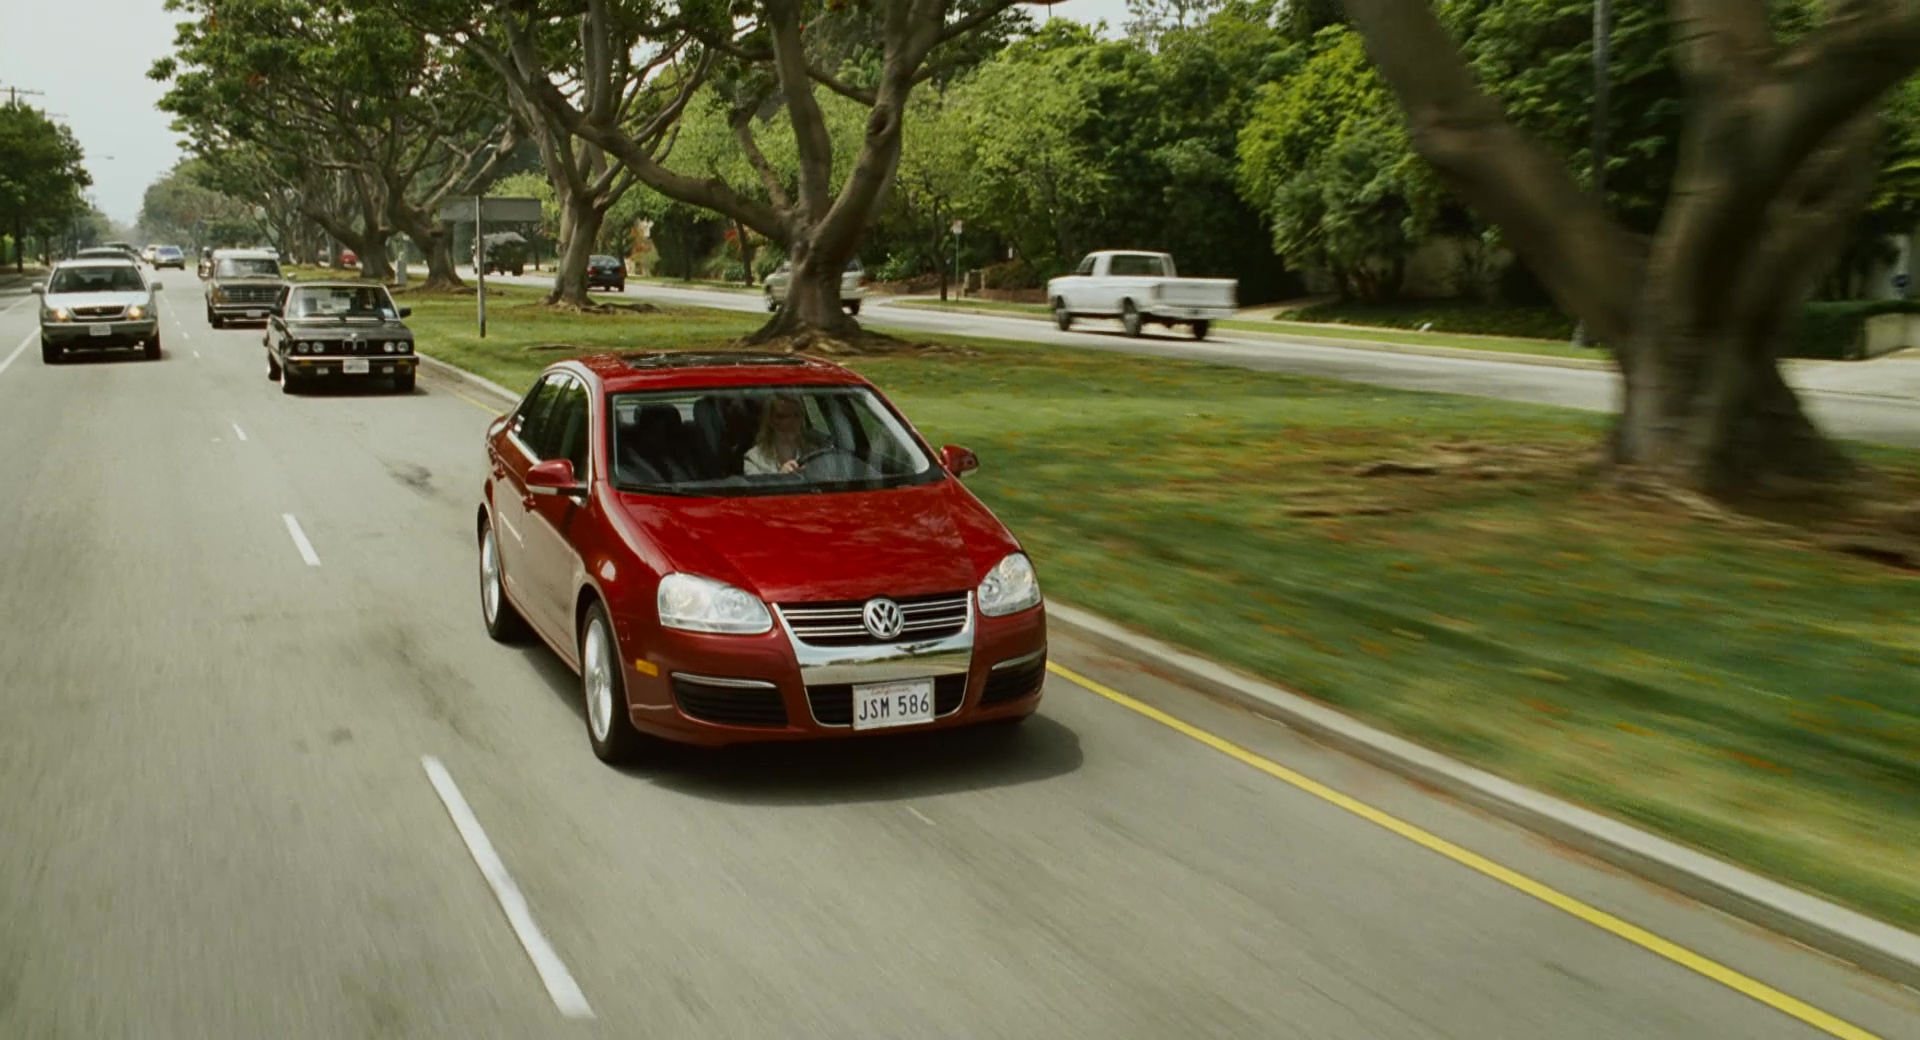 volkswagen jetta a5  typ 1k  red car used by katherine